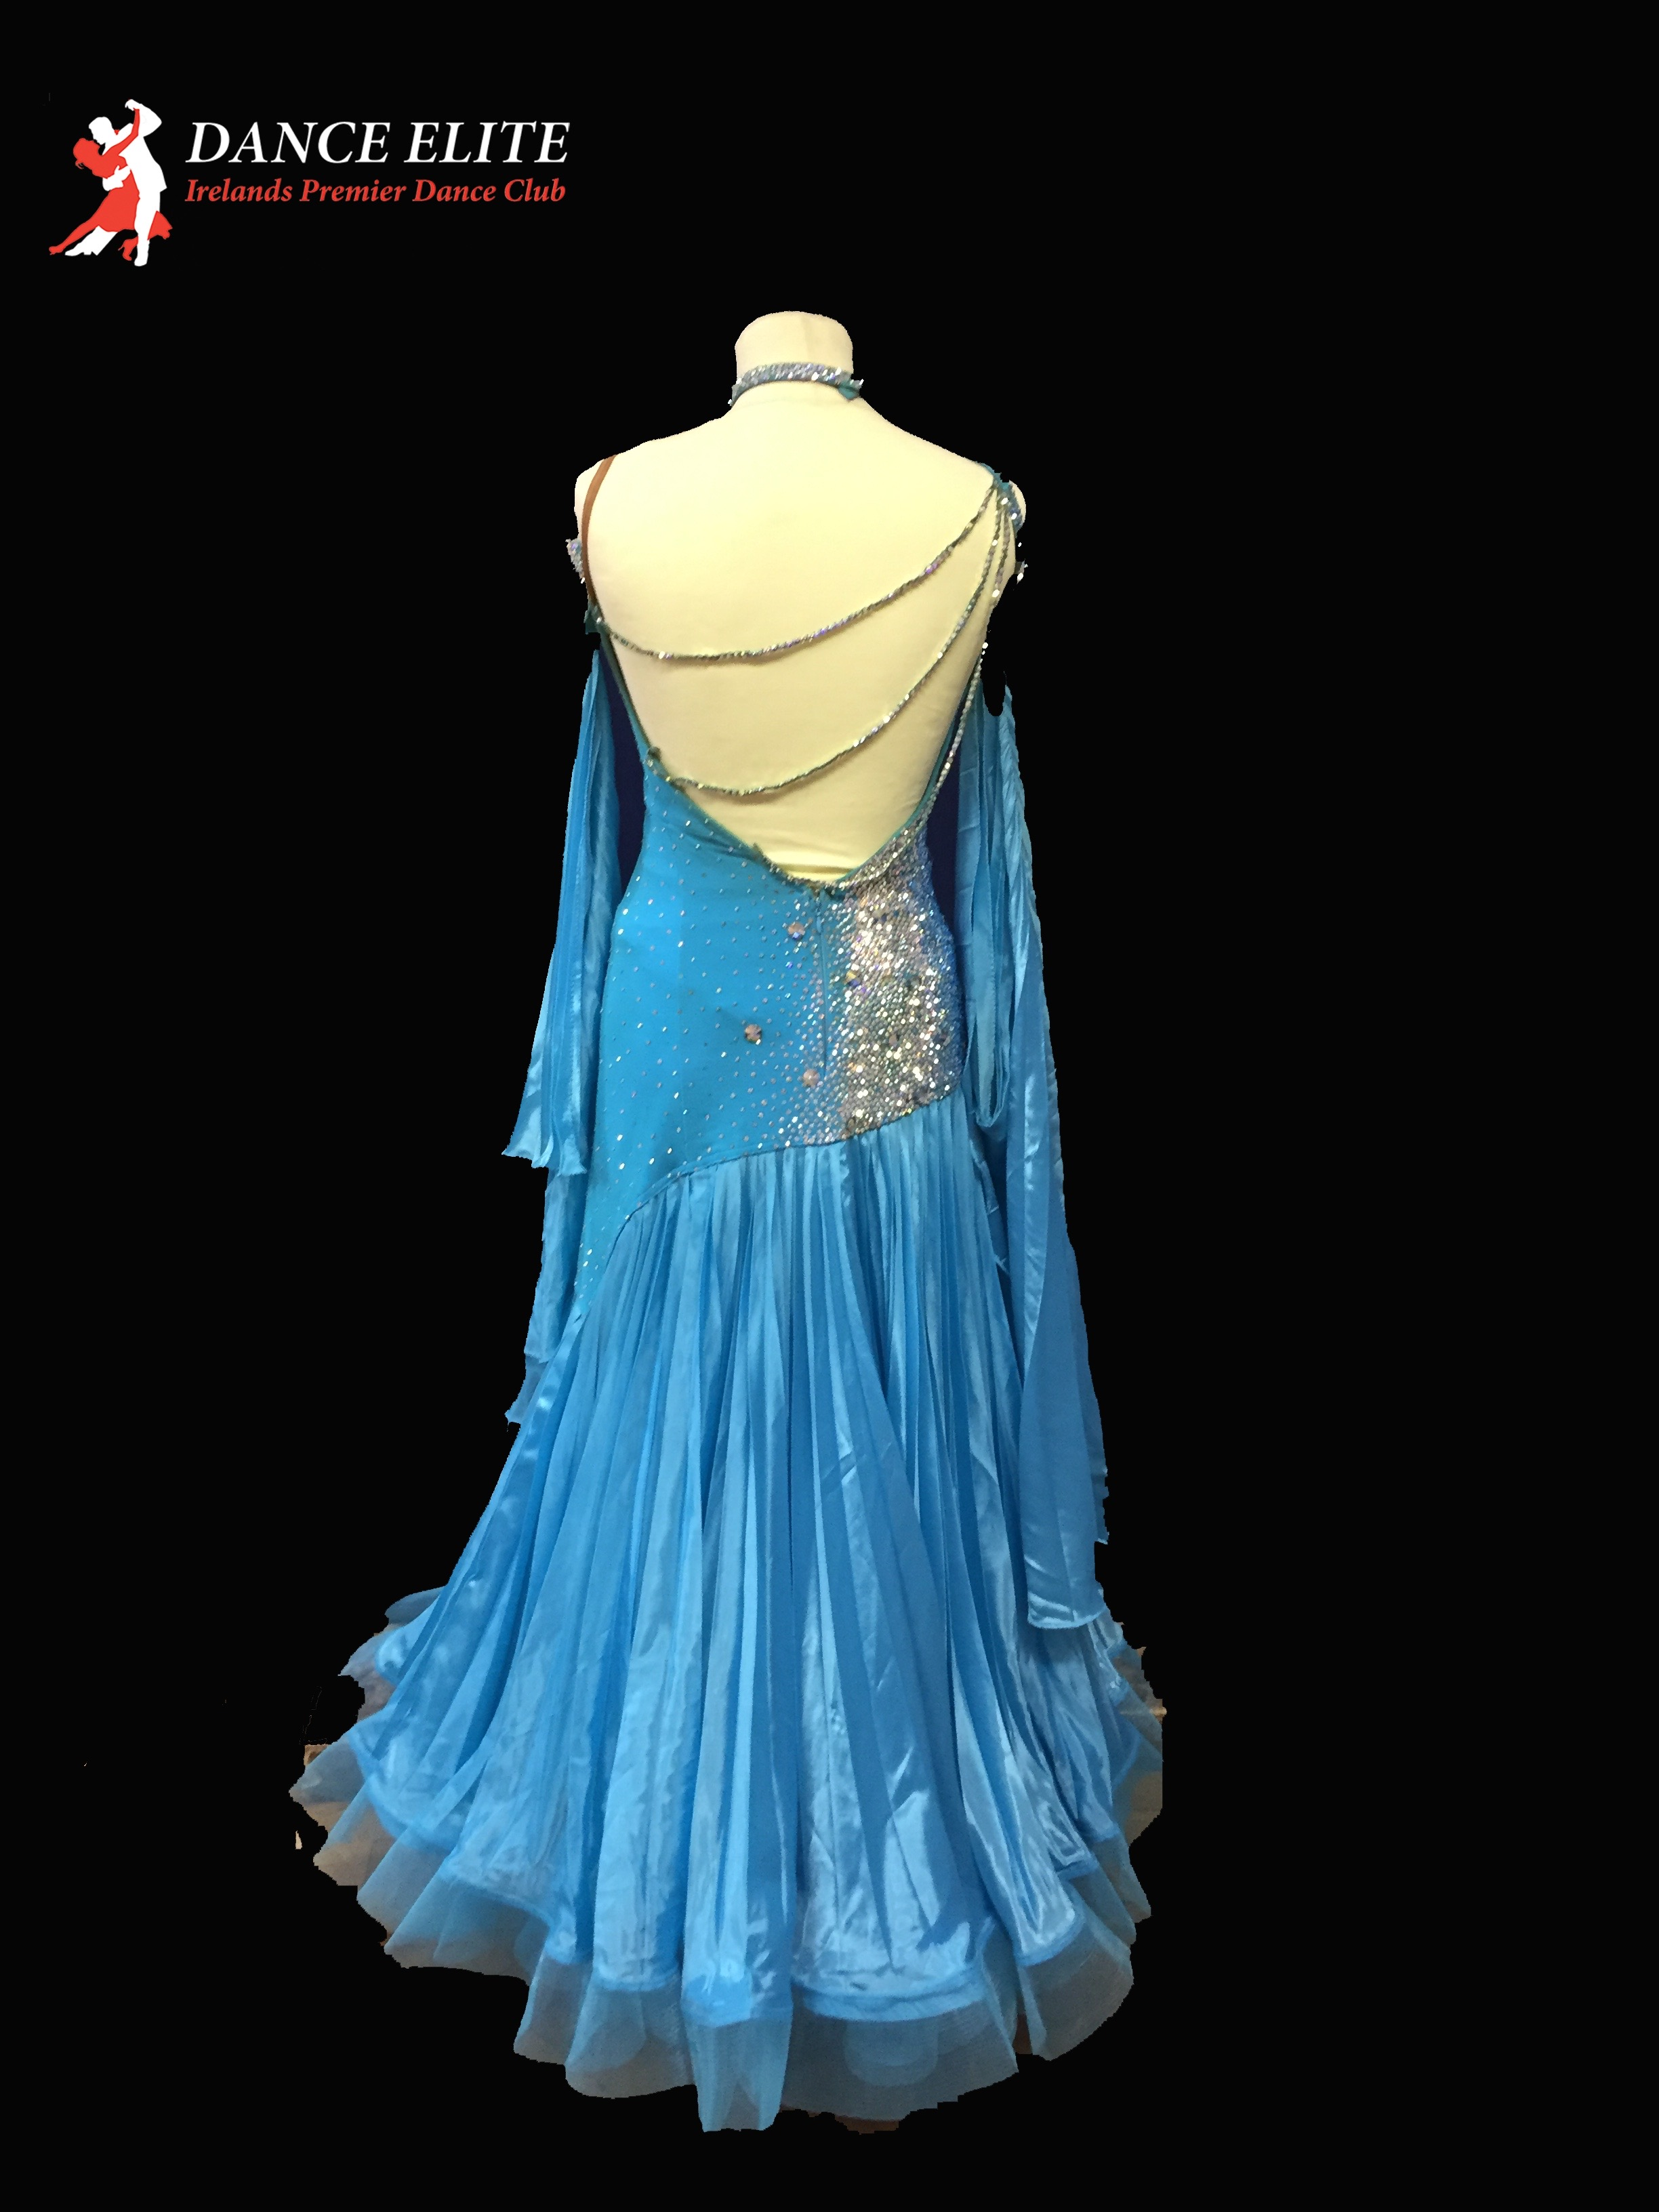 Ballroom Dance Dress